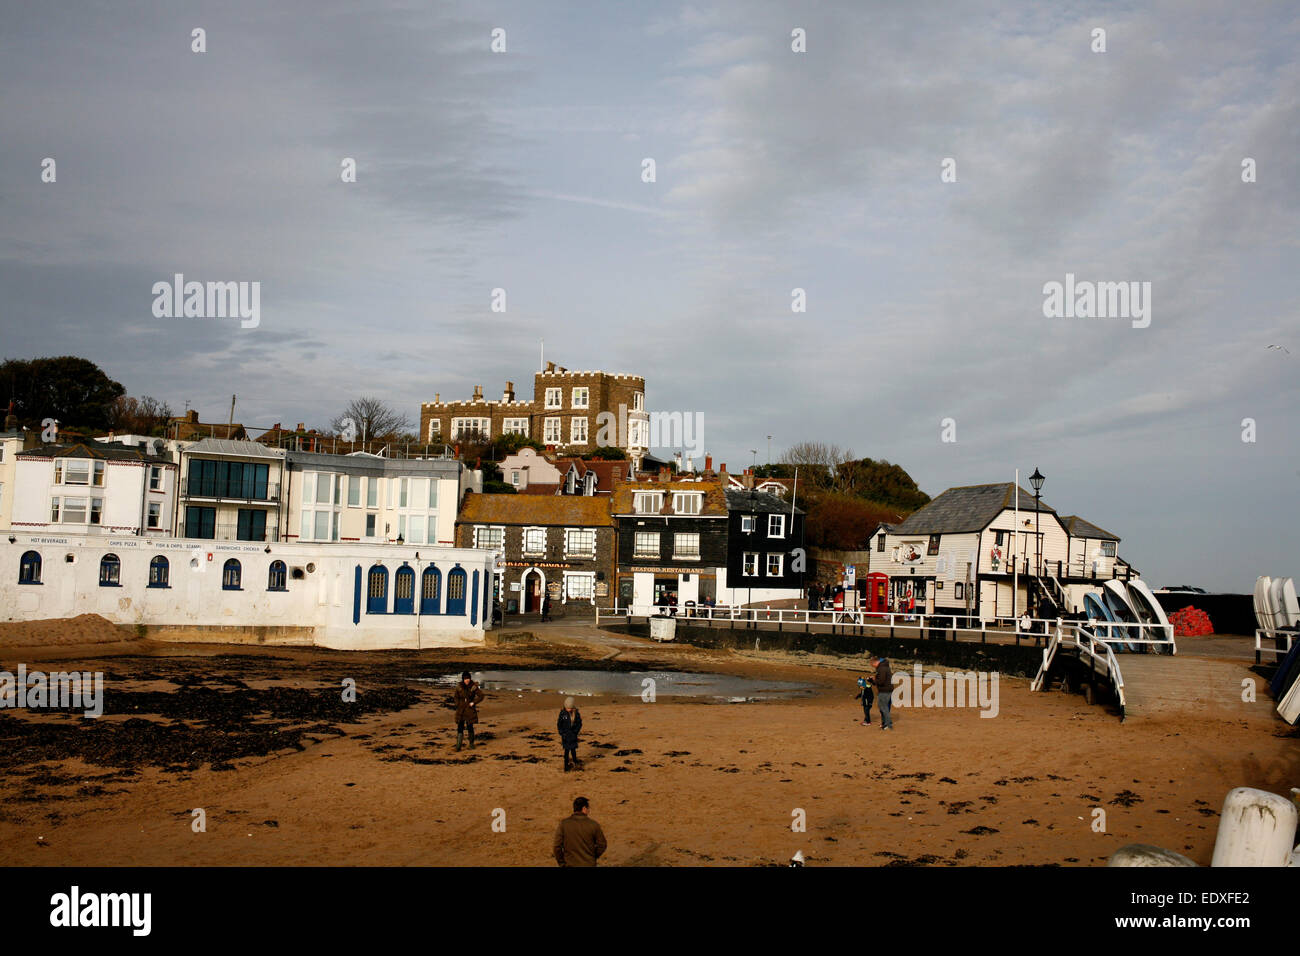 coastal town of broadstairs in south east county of kent uk january 2015 - Stock Image